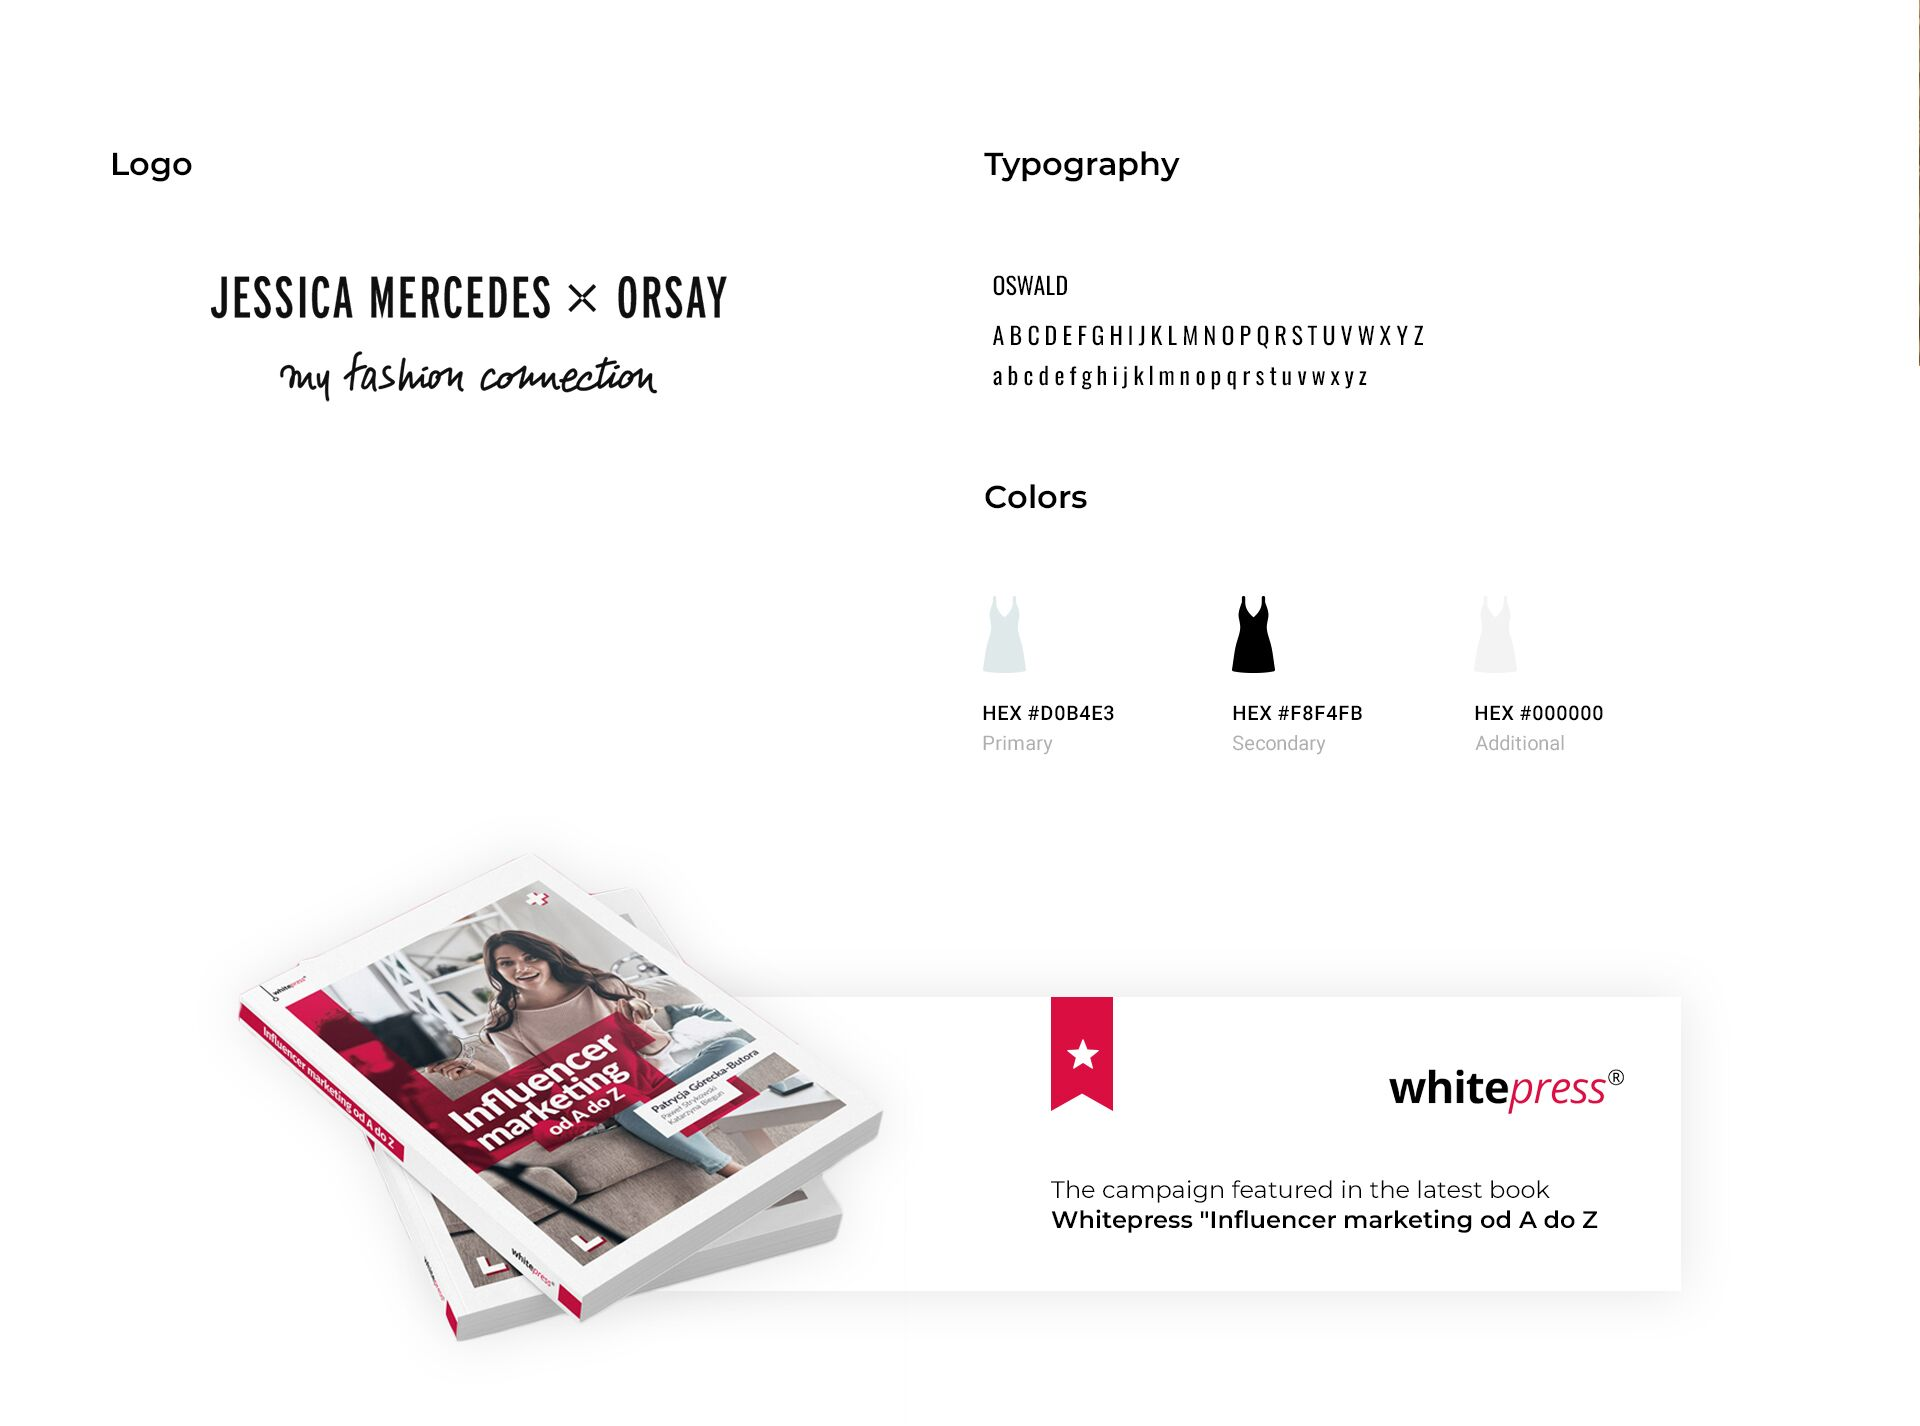 jessica mercedes & orsay: logo, typography, colors